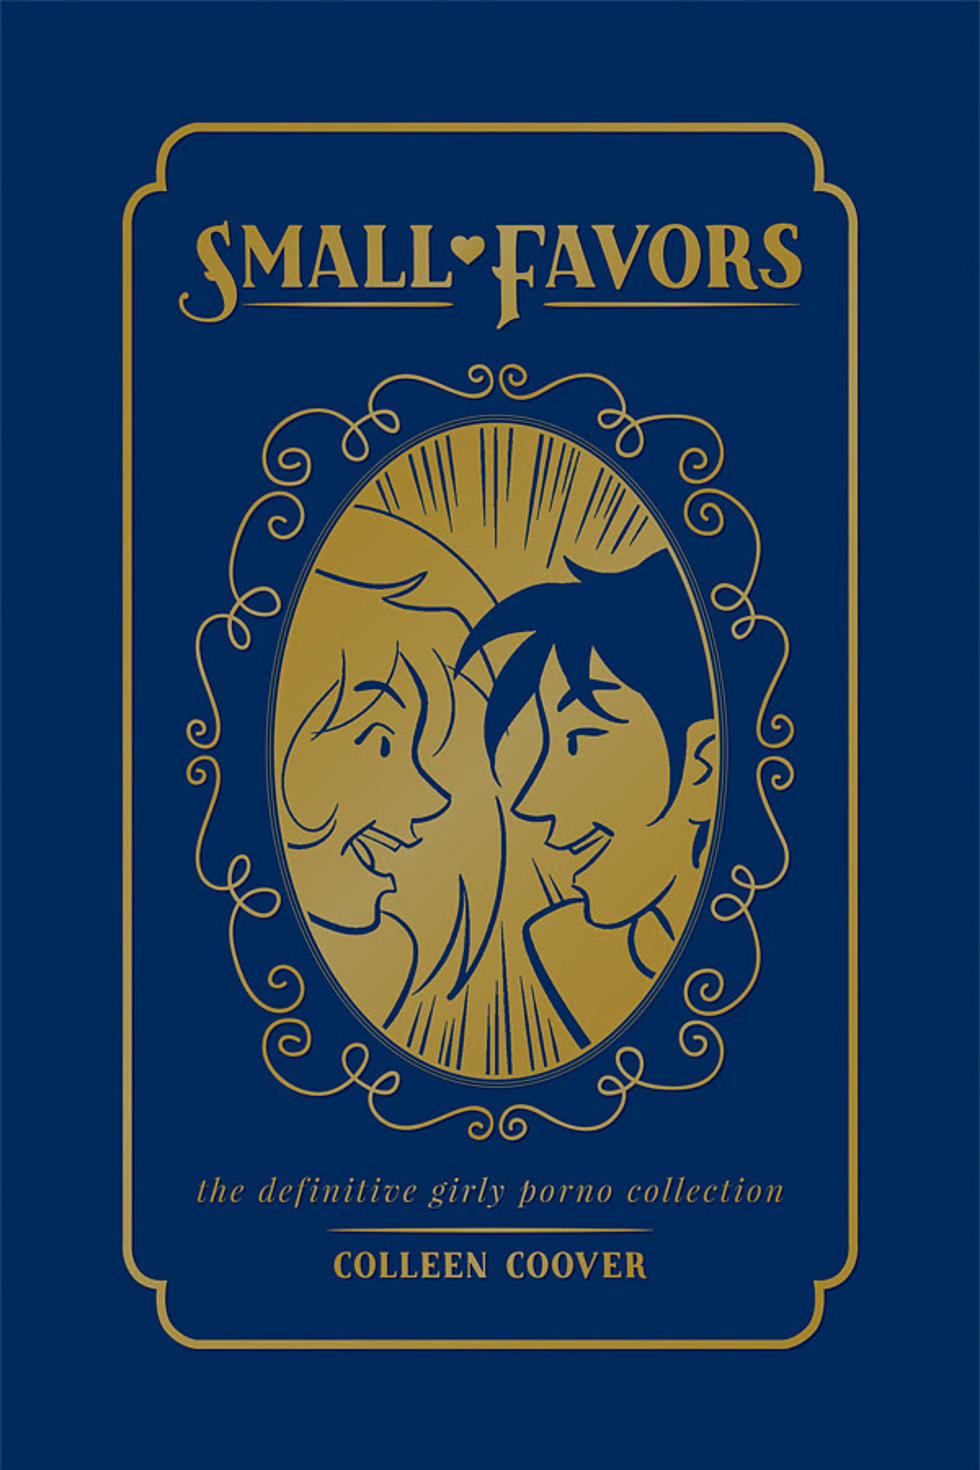 Erotic Comedy 'Small Favors' Collected By Limerence Press